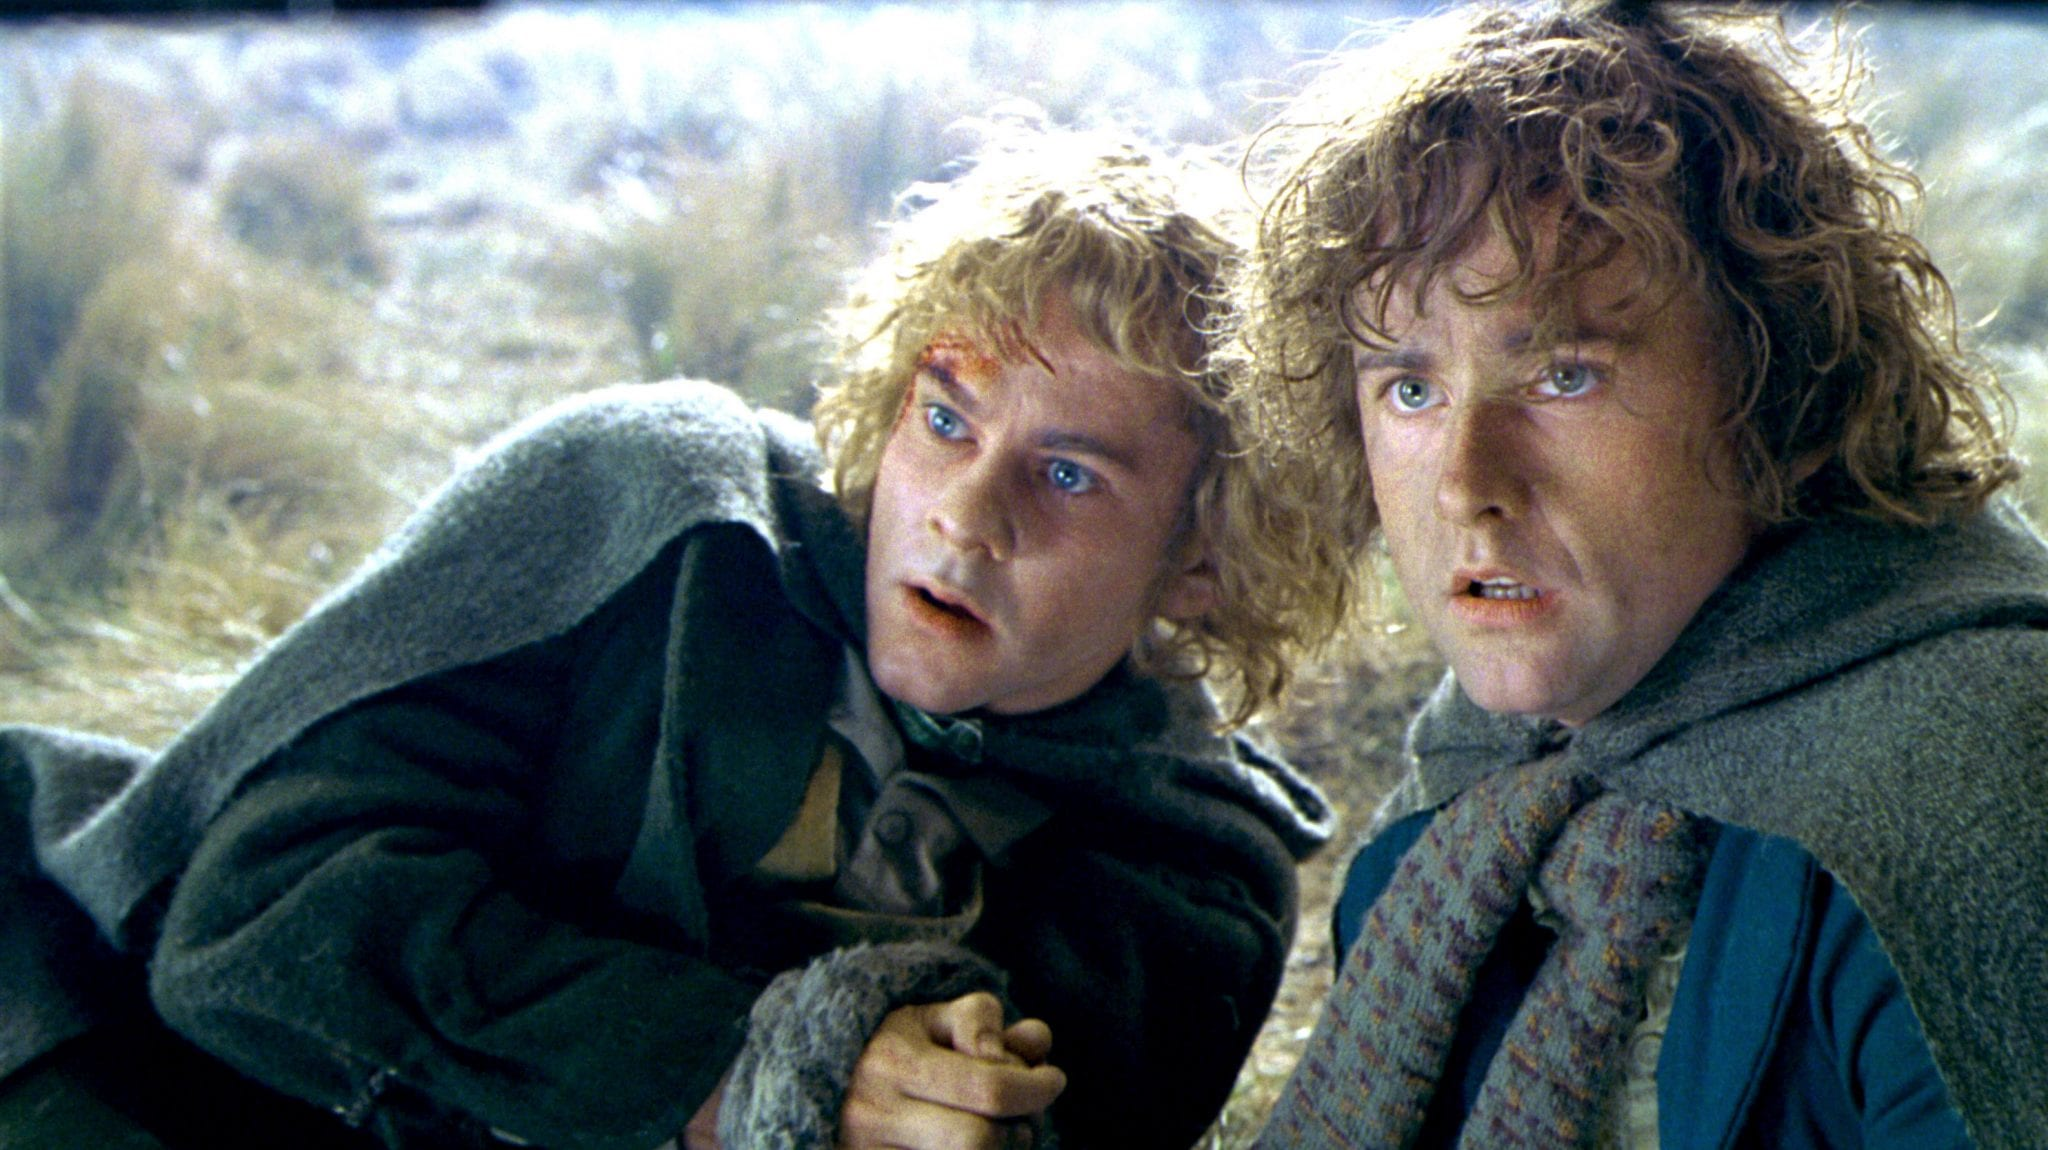 merry pippin lord of the rings podcast